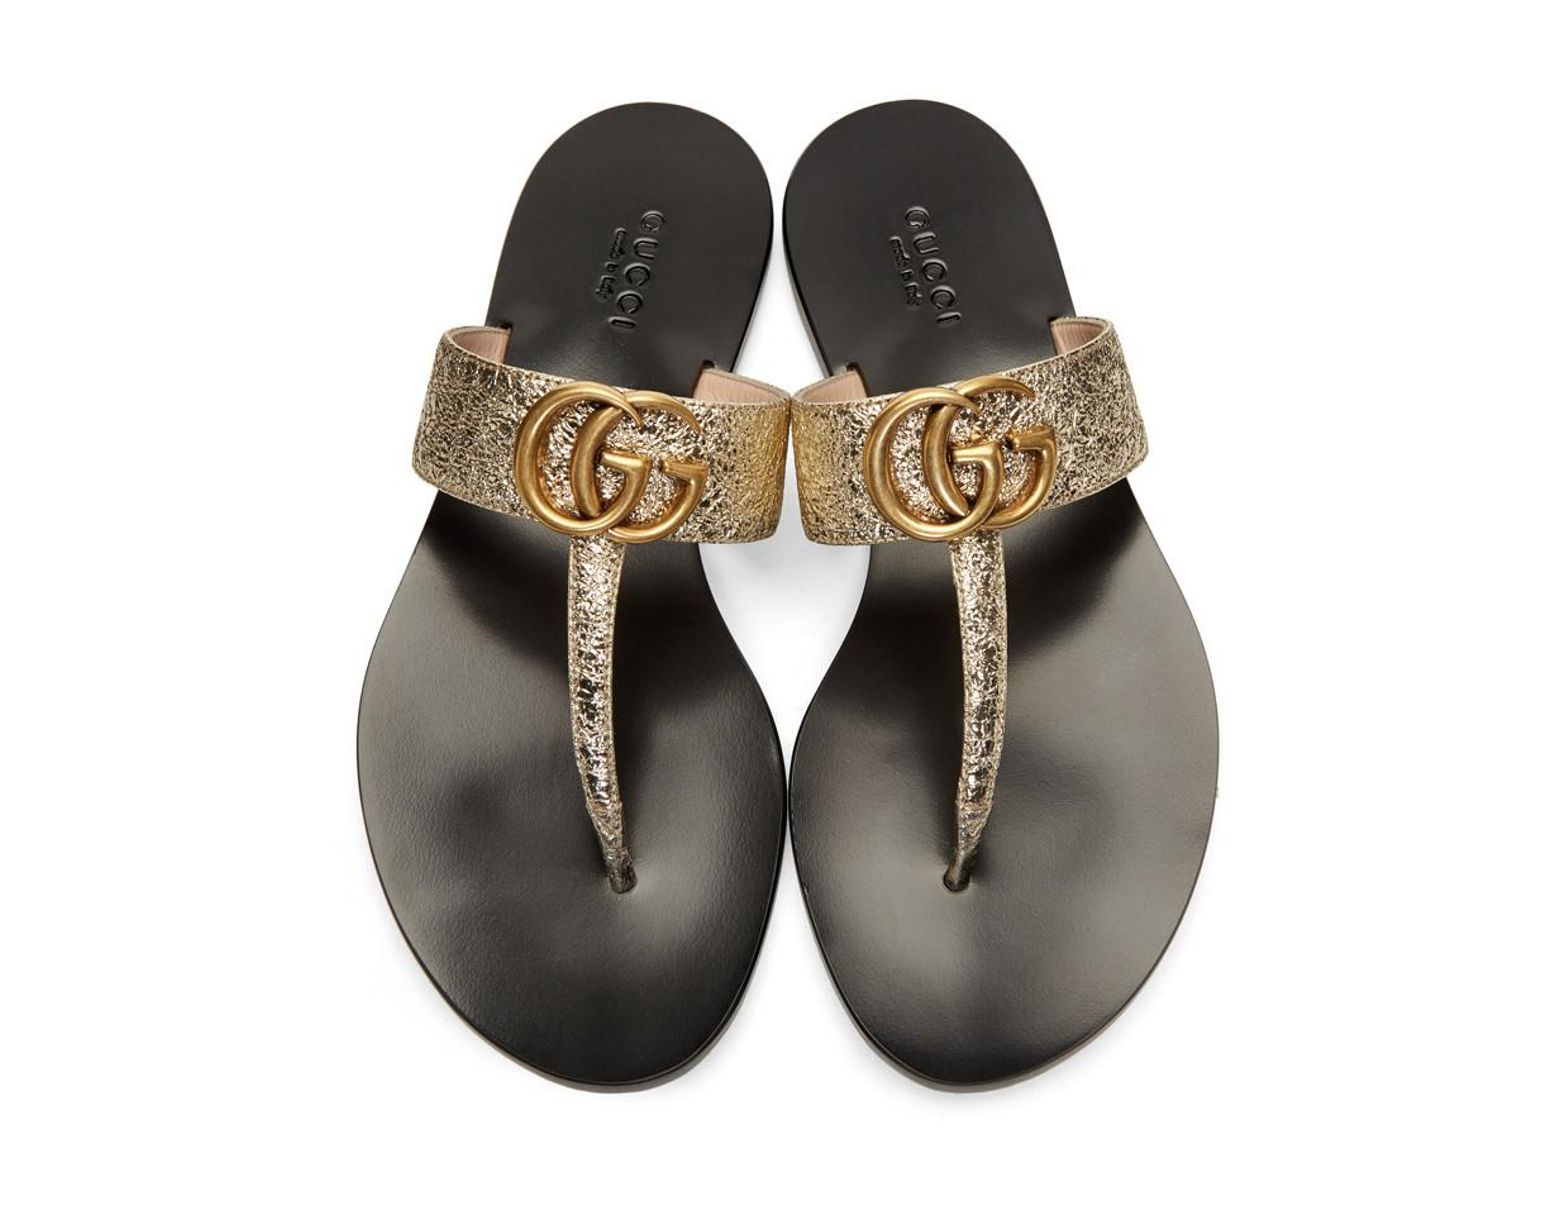 a55e25902 Gucci Gold Double G Leather Thong Sandal. in Metallic - Lyst